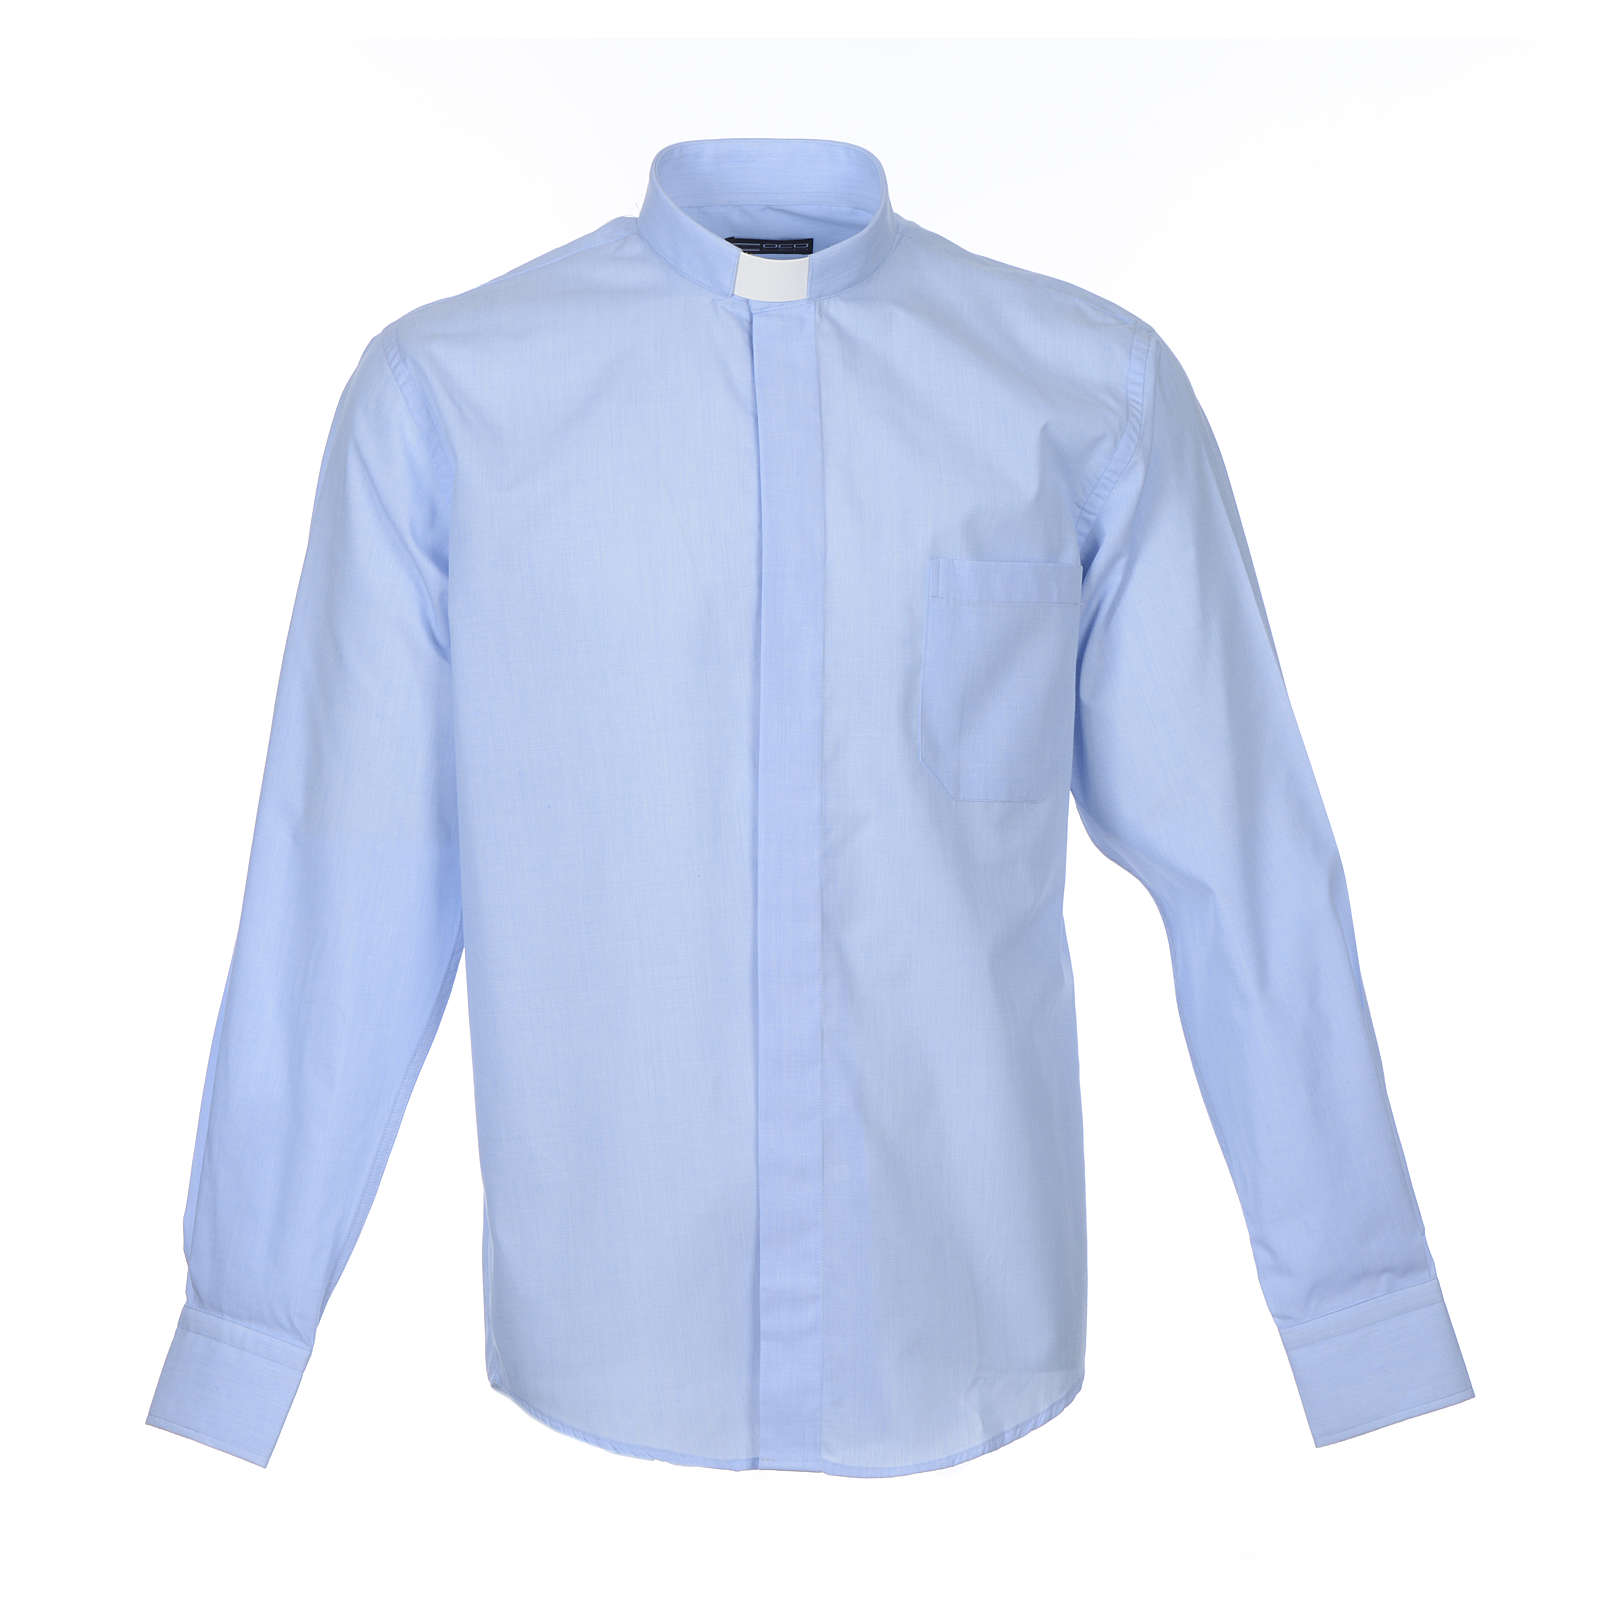 Light Blue Clergy Shirt long sleeve chambray mixed cotton 4